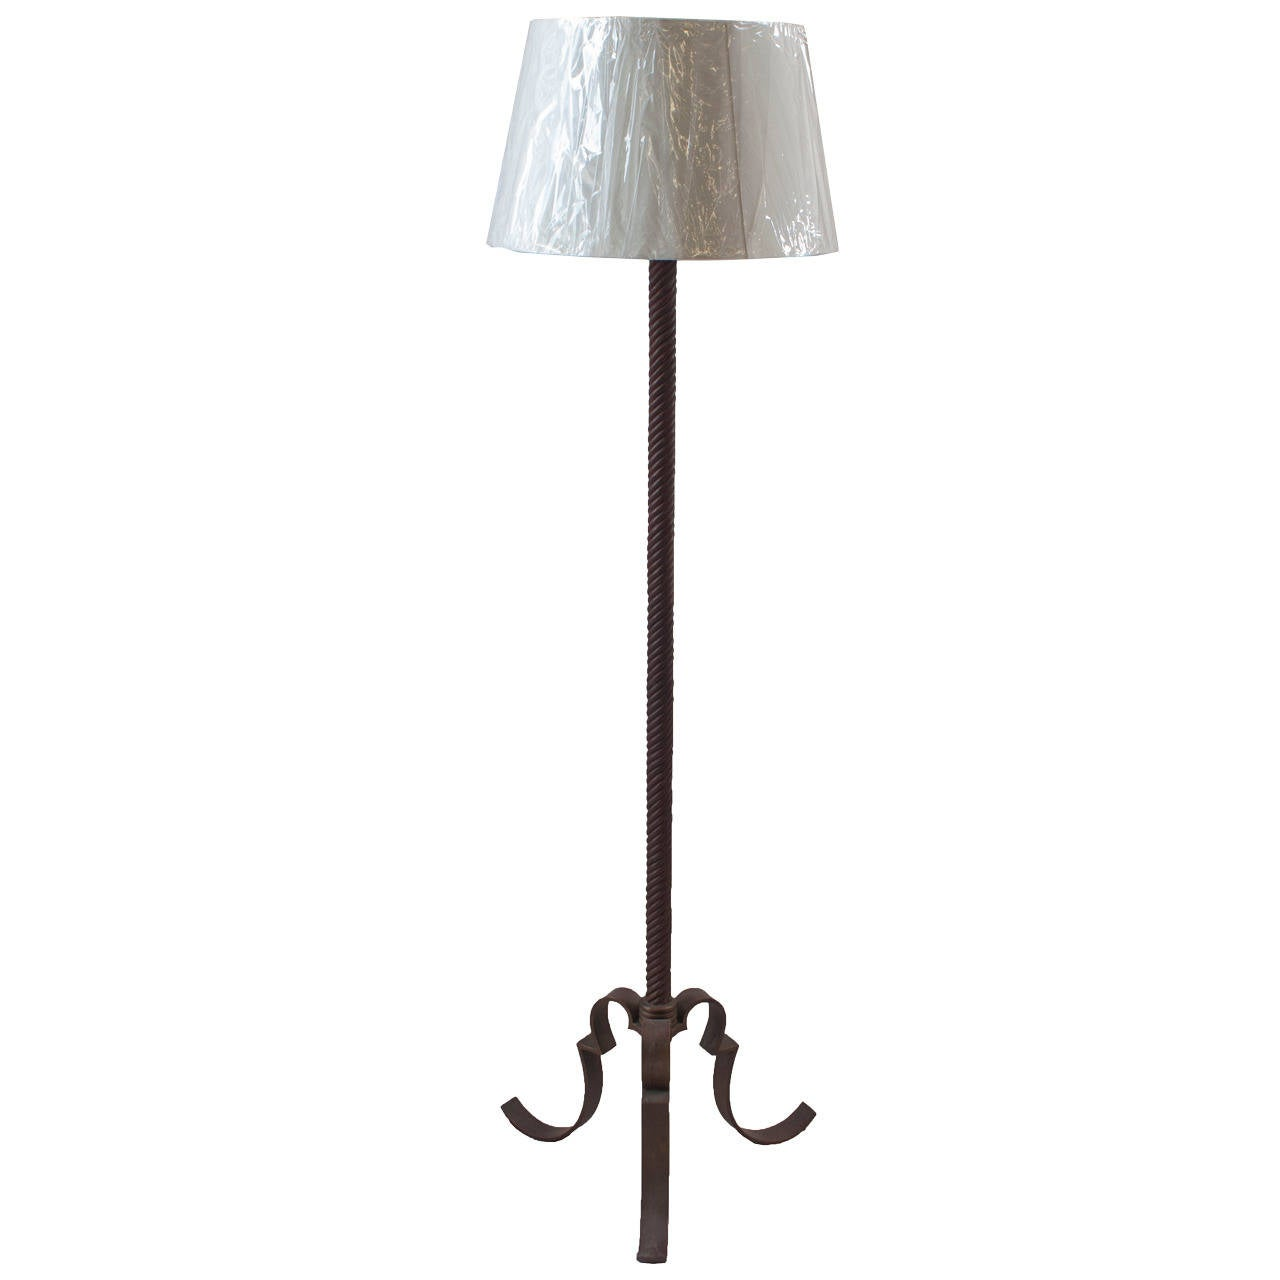 single wrought iron floor lamp for sale at 1stdibs. Black Bedroom Furniture Sets. Home Design Ideas